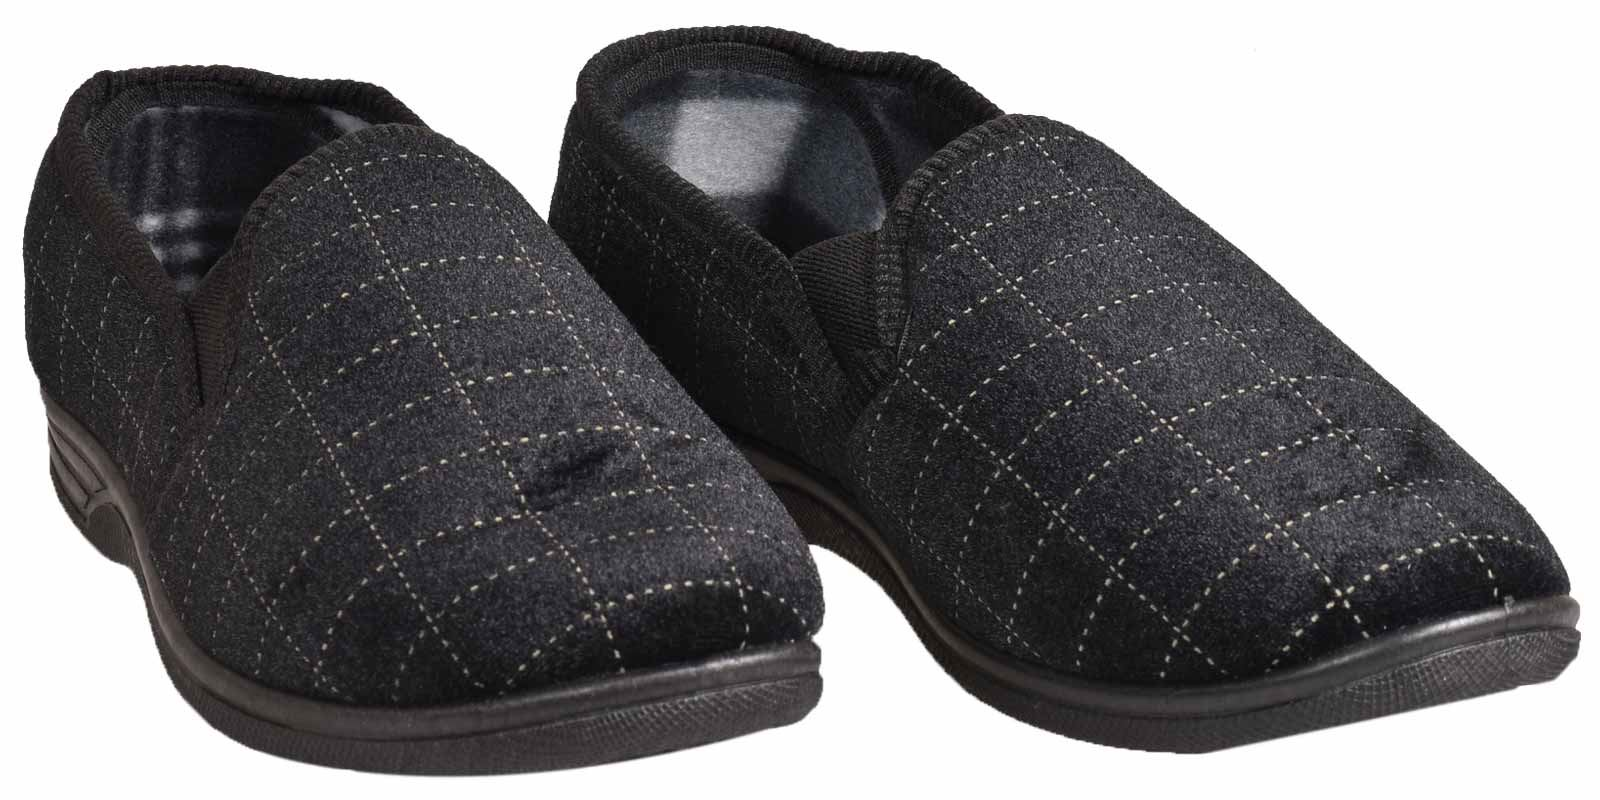 new mens slippers twin gussets check slip on bedroom